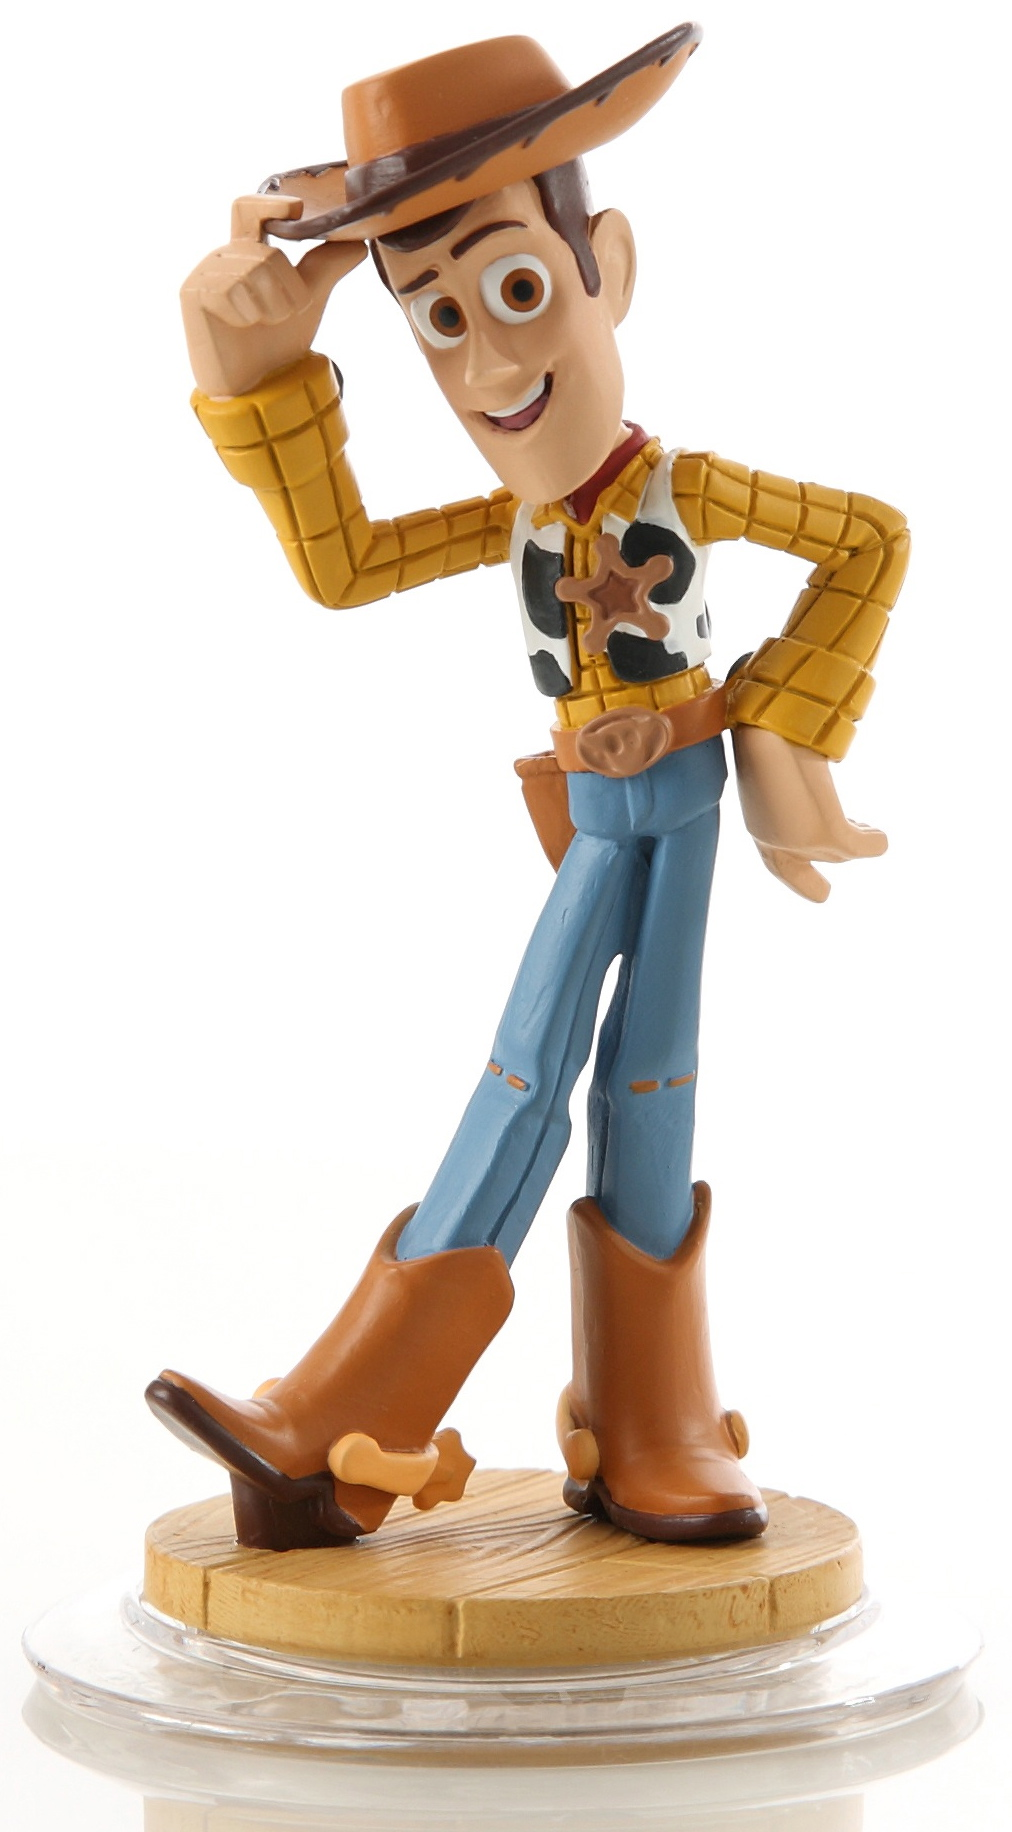 Disney Infinity: Toy Story in Space Play Set 2014 pc game Img-4